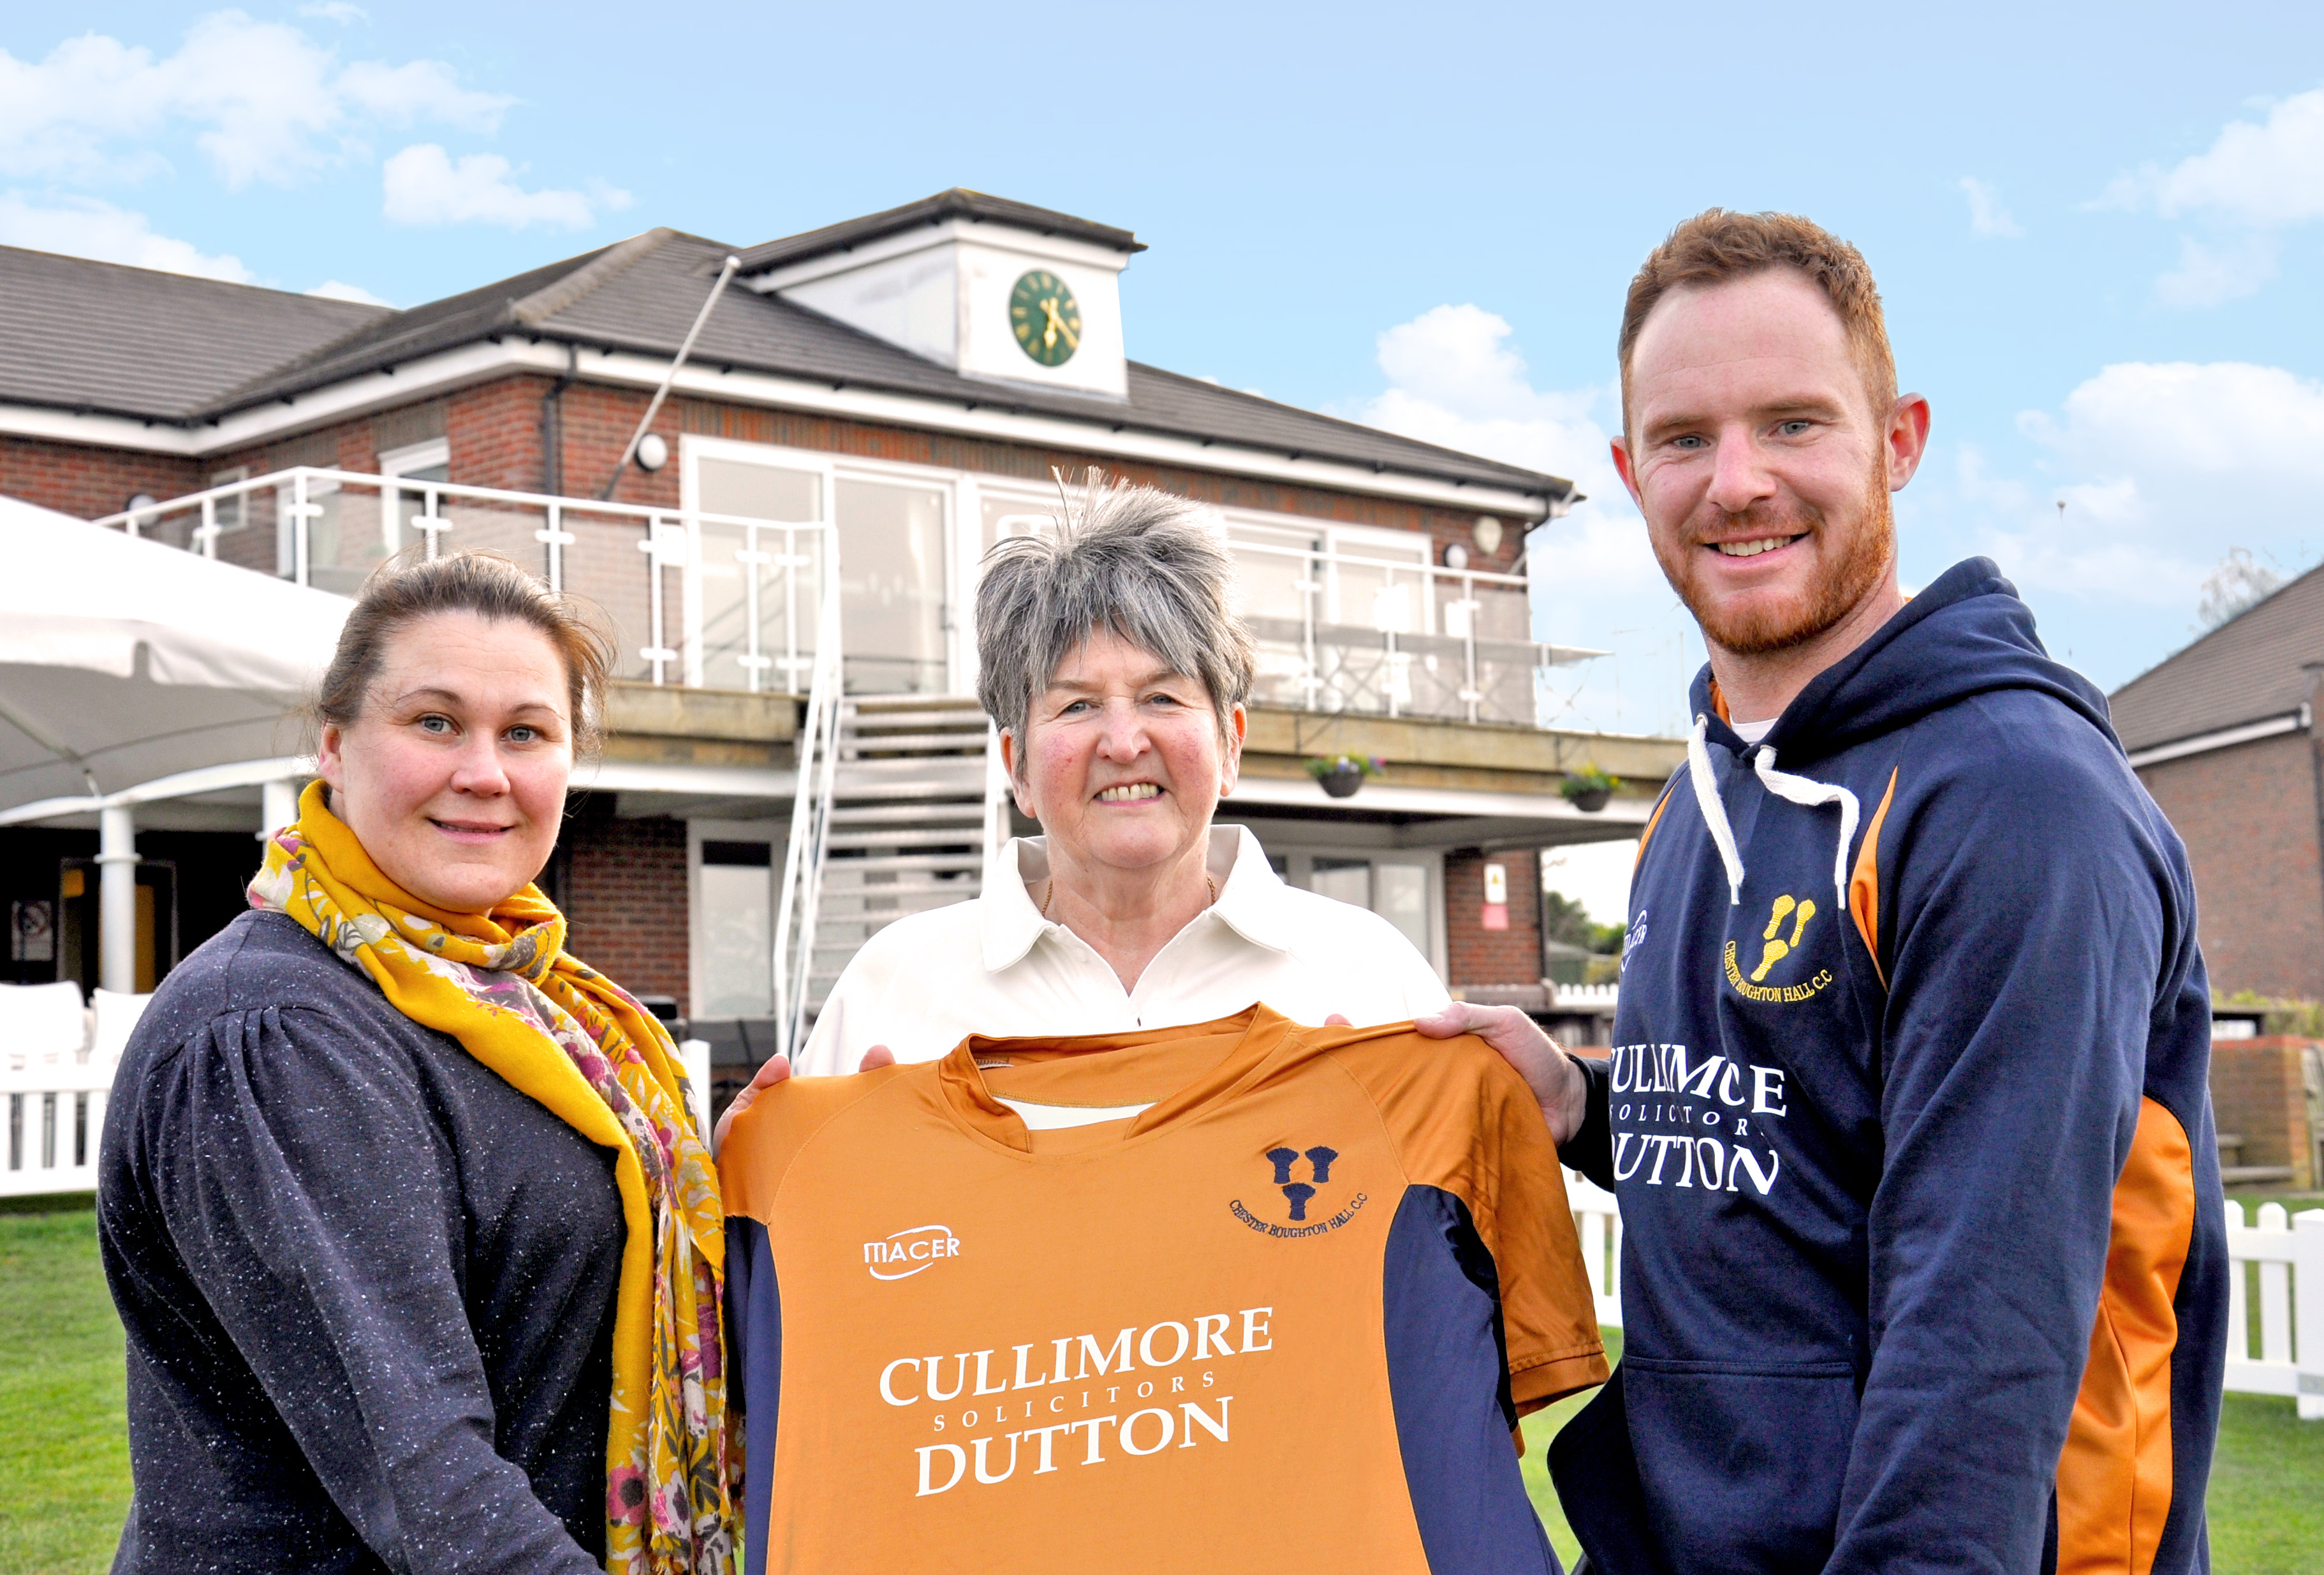 Adele Bebbington-Plant, Associate Solicitor Cullimore Dutton Solicitors, Di Totty, CBHCC Committee and First XI Captain, Rick Moore